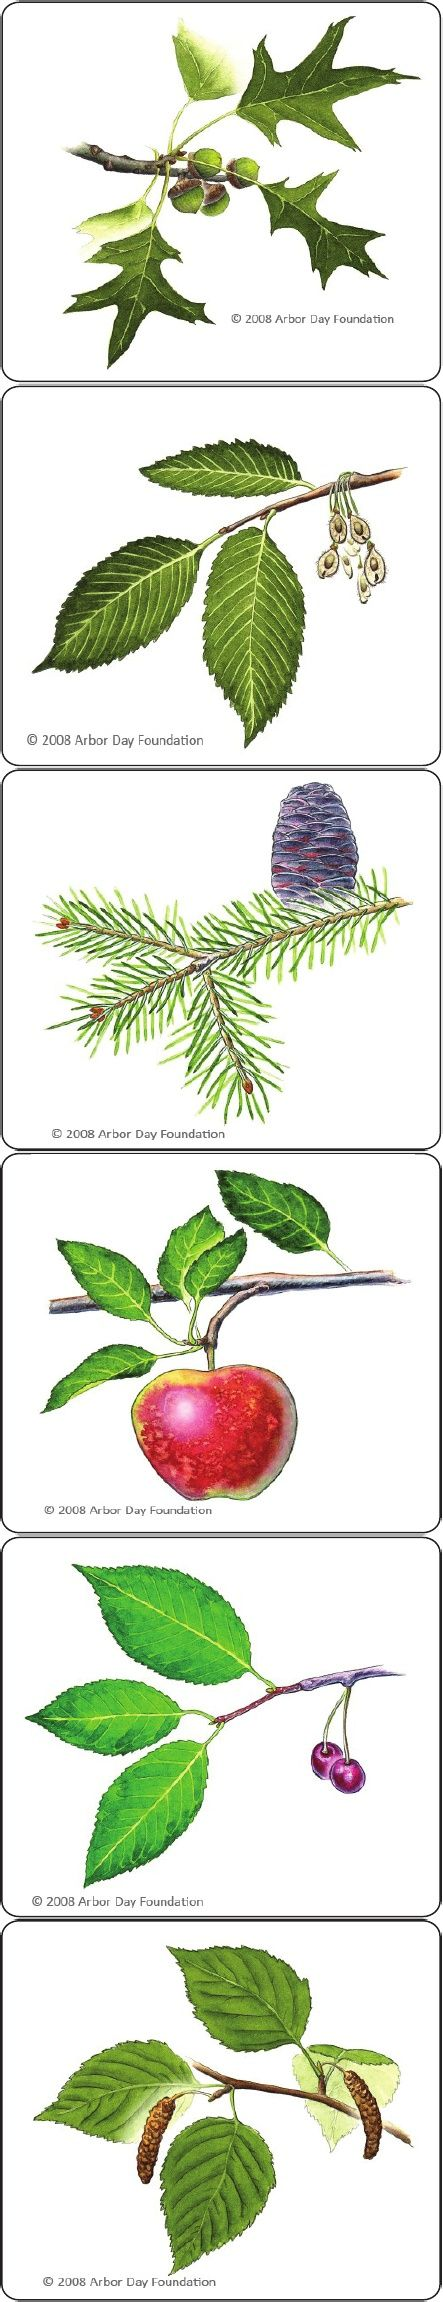 Tree Leaf Identification Card Game